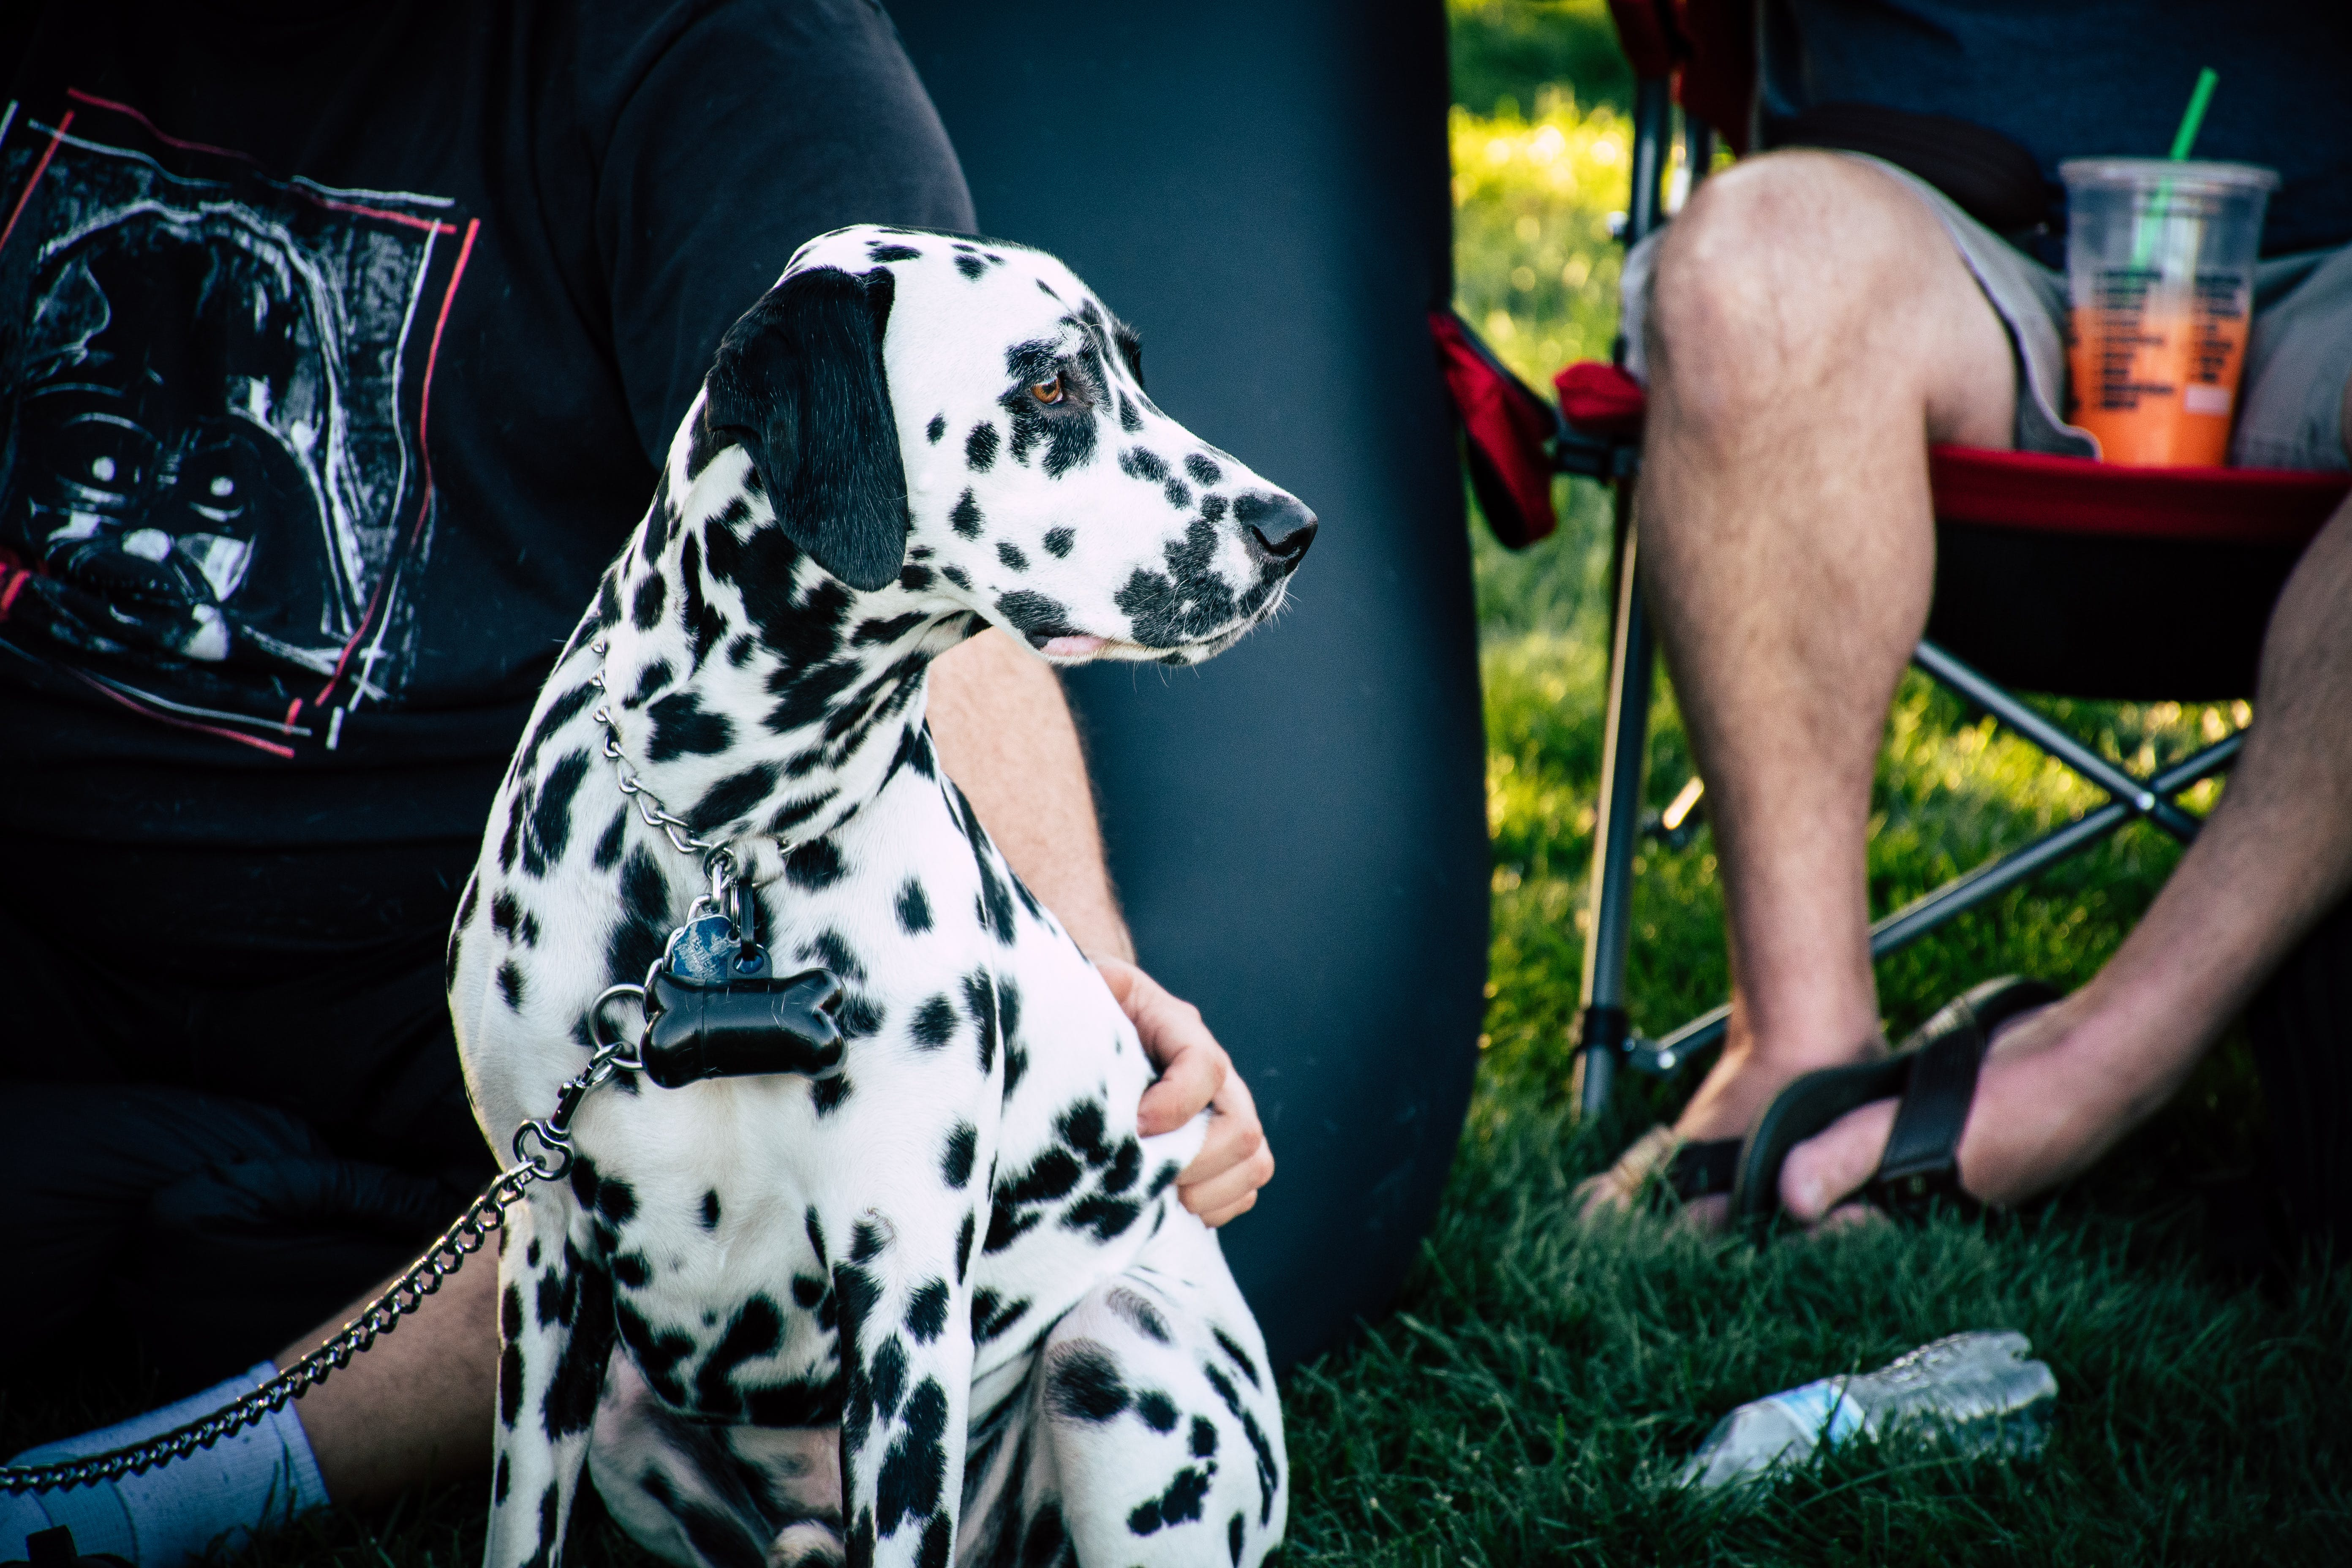 Adult White and Black Dalmatian Near Person Sitting on Chair